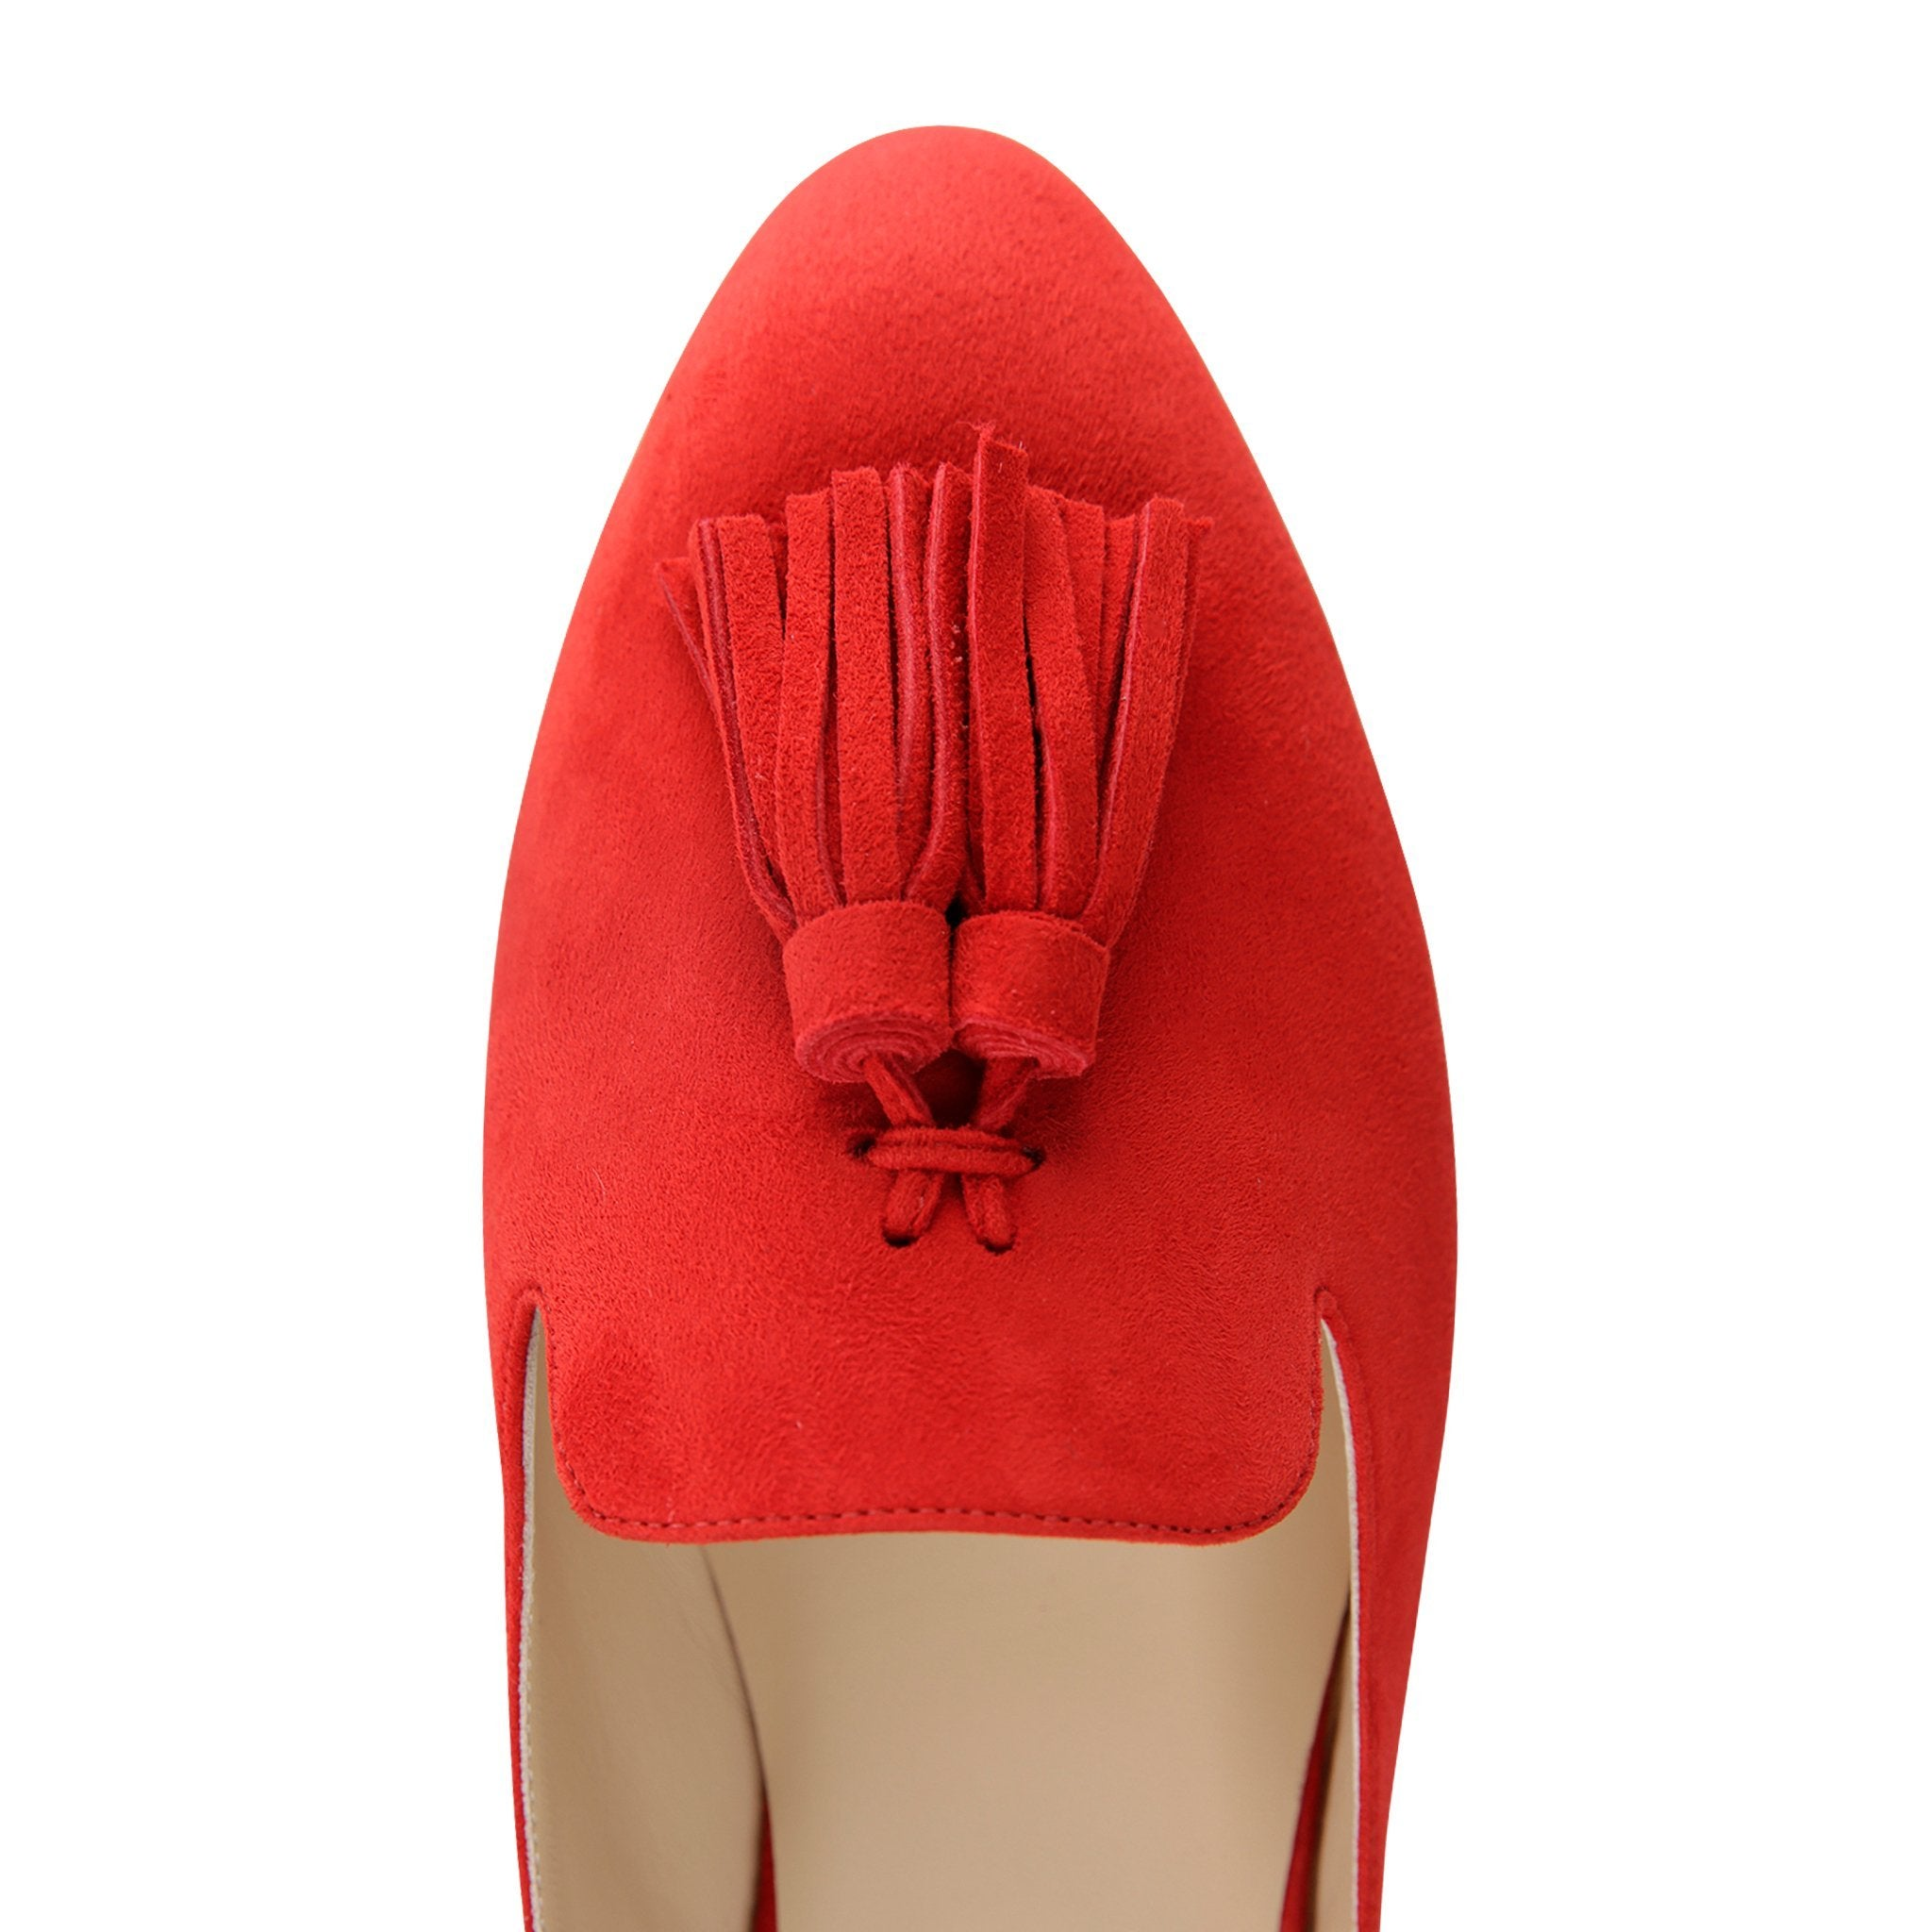 ISEO - Velukid Rosso + Tassel, VIAJIYU - Women's Hand Made Sustainable Luxury Shoes. Made in Italy. Made to Order.